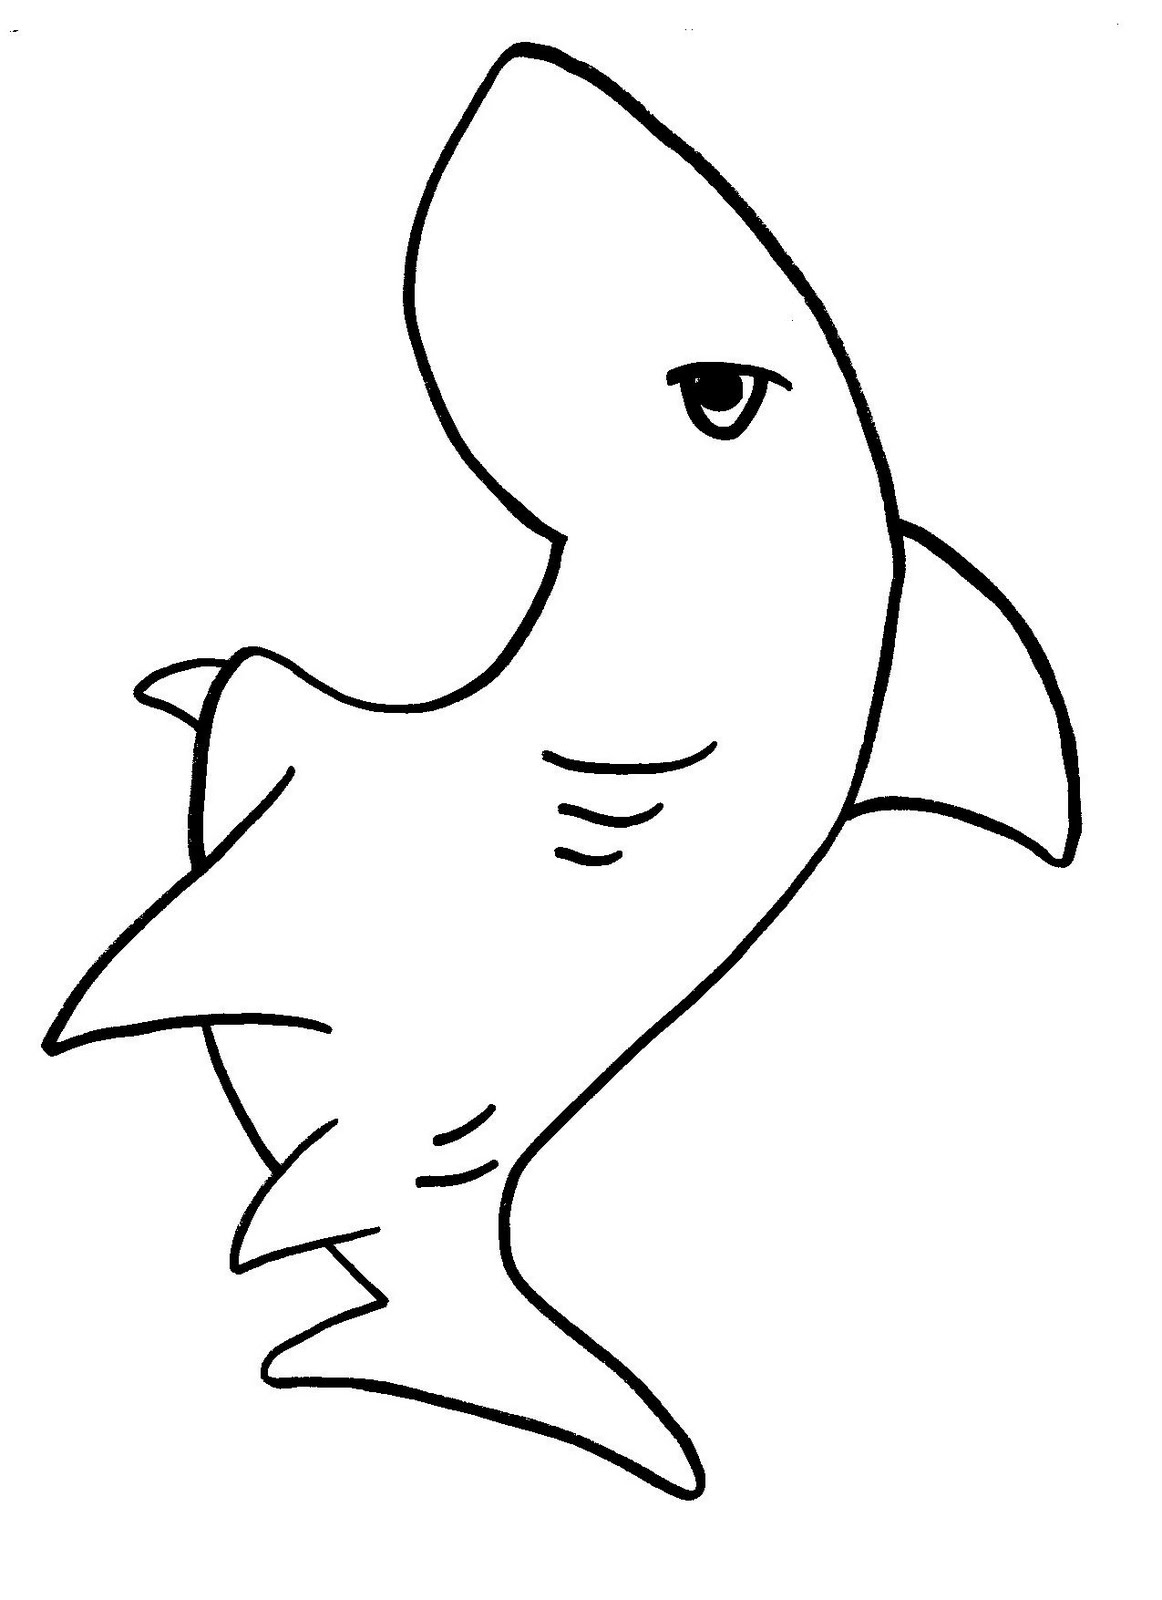 shark color sheet coloring pages shark coloring pages free and printable sheet color shark